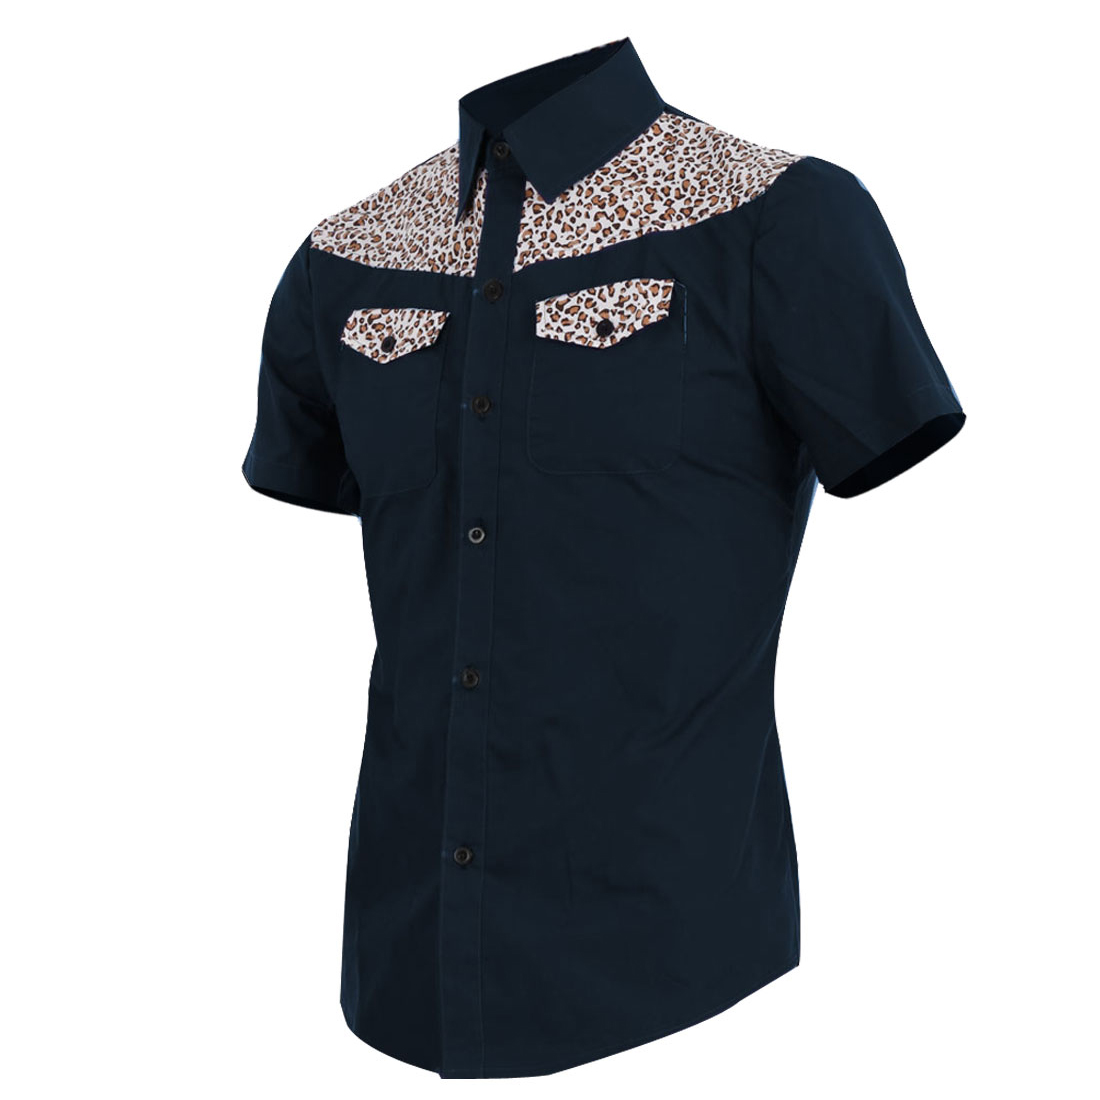 Men Button Up Chest Pockets Leopard Pattern Splice Navy Blue Short Sleeve Shirt M